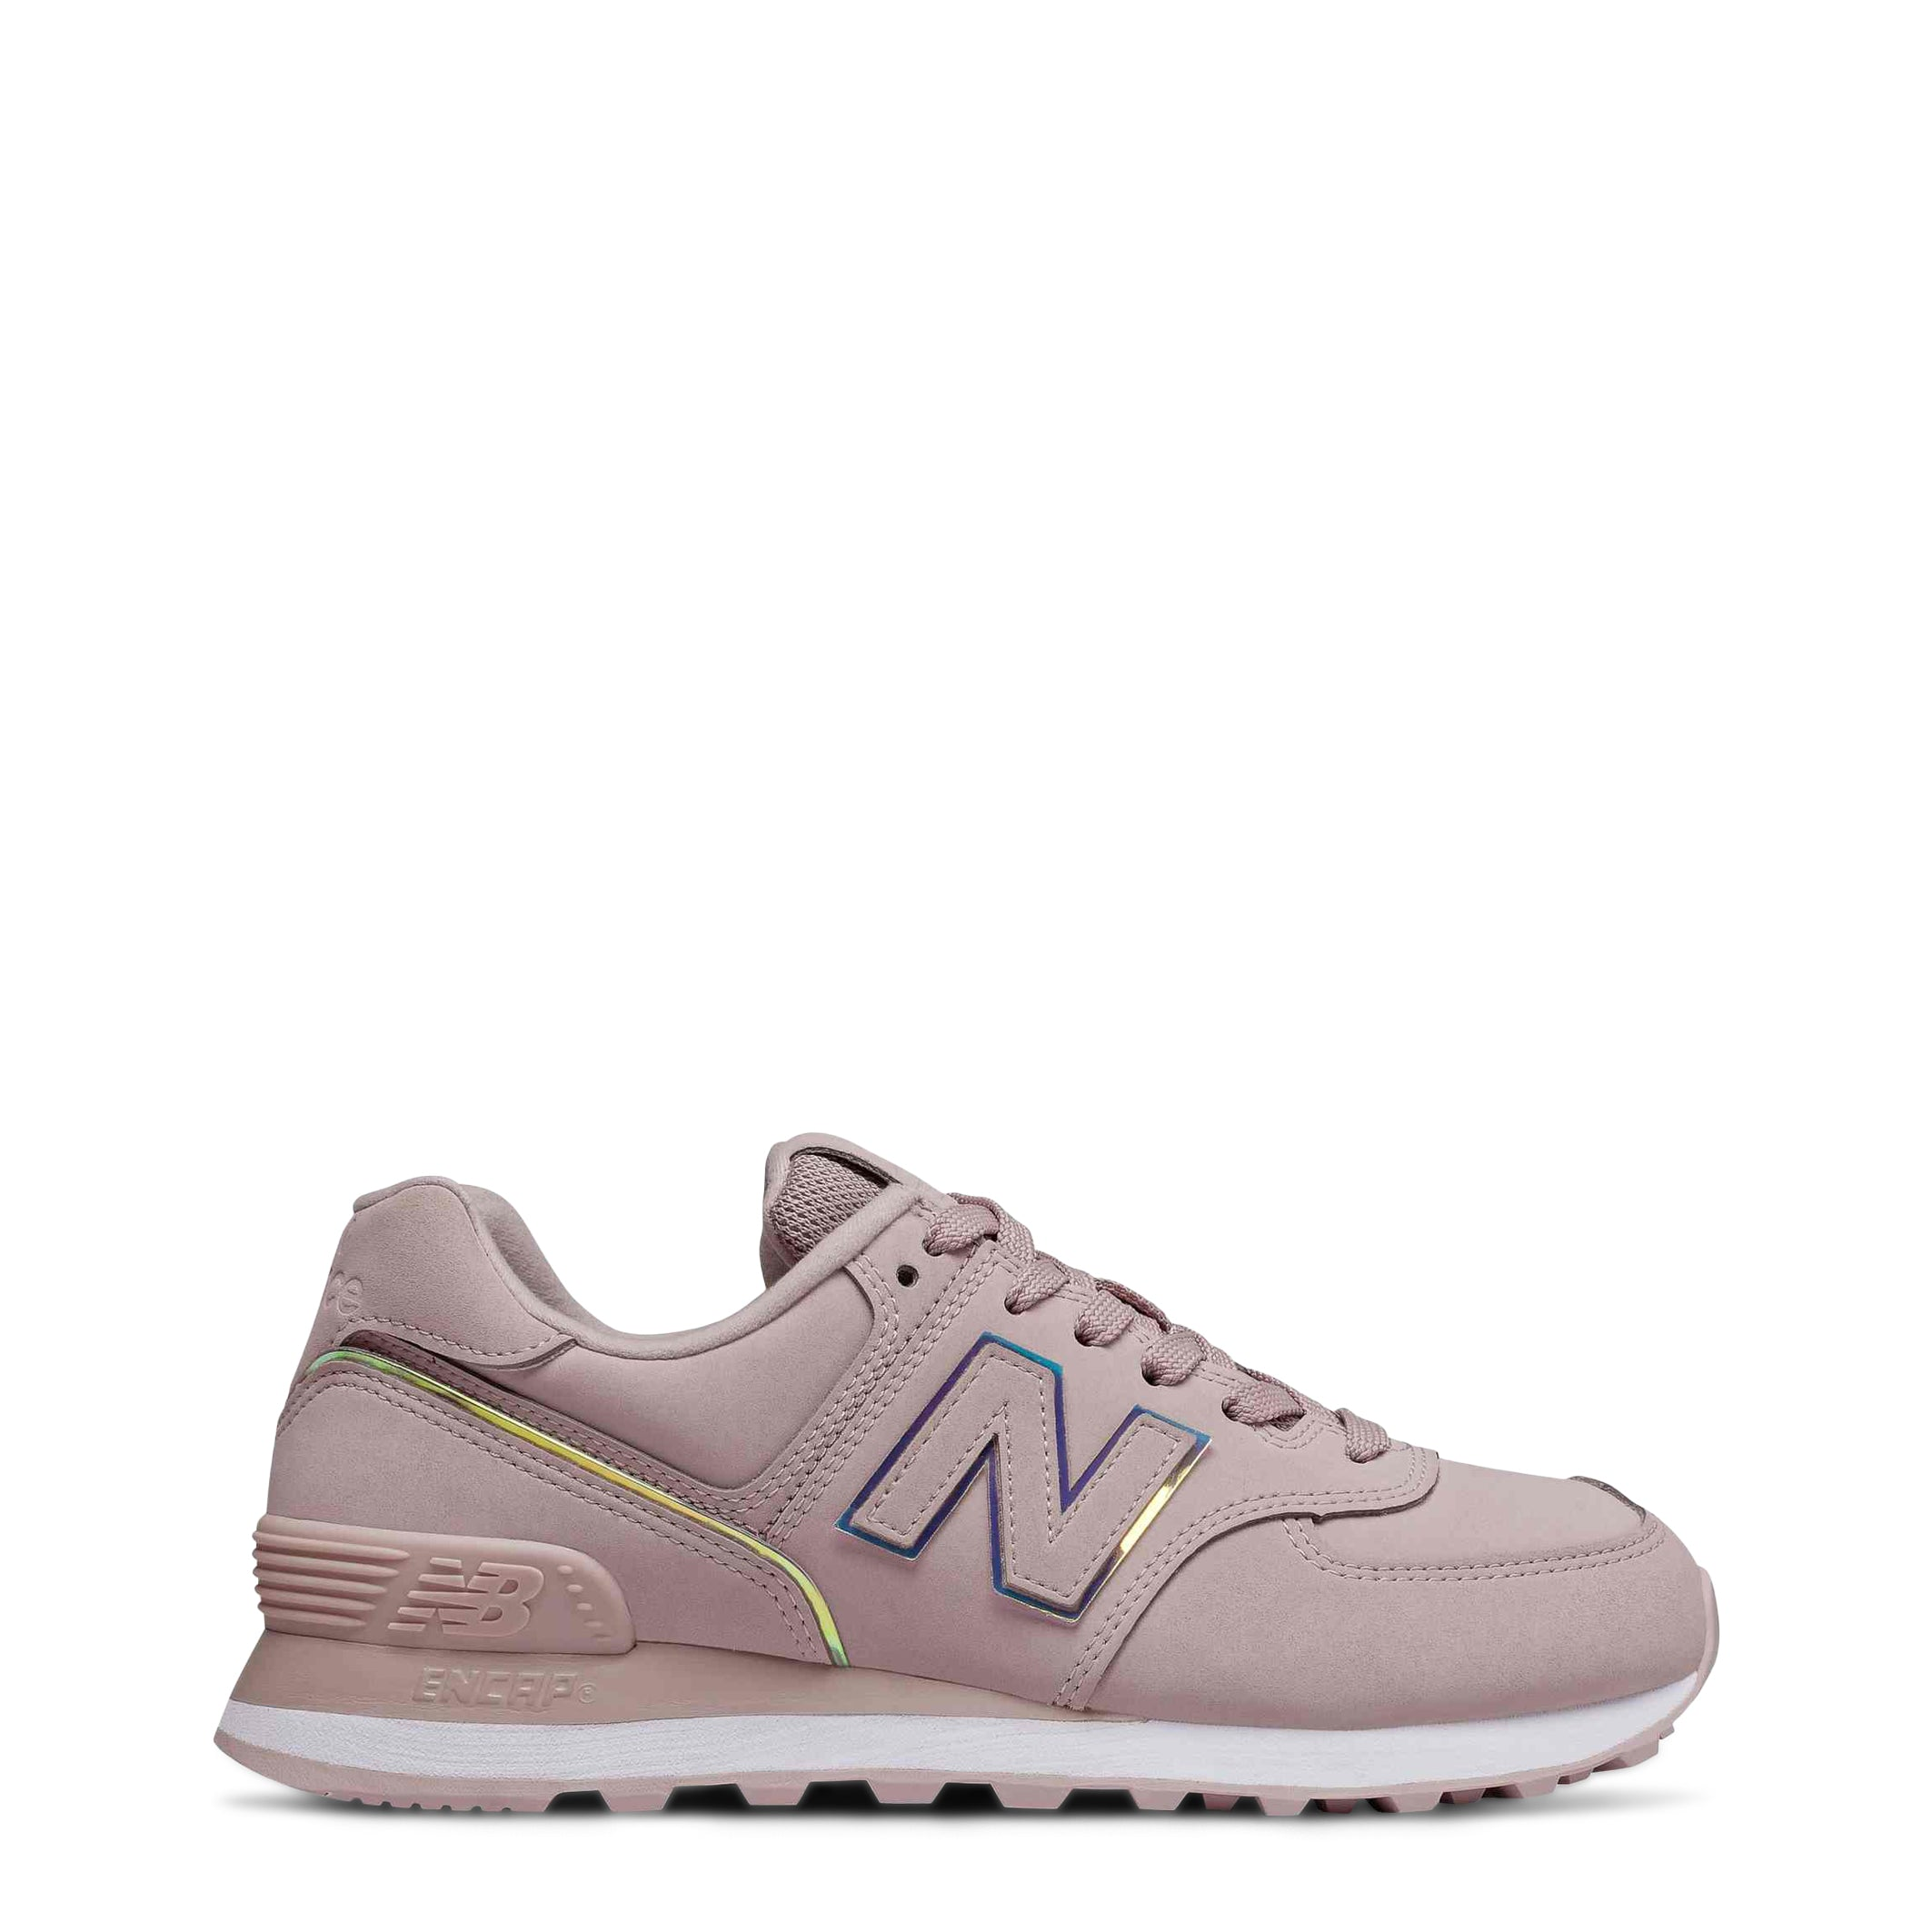 New Balance - Sneakers Donna